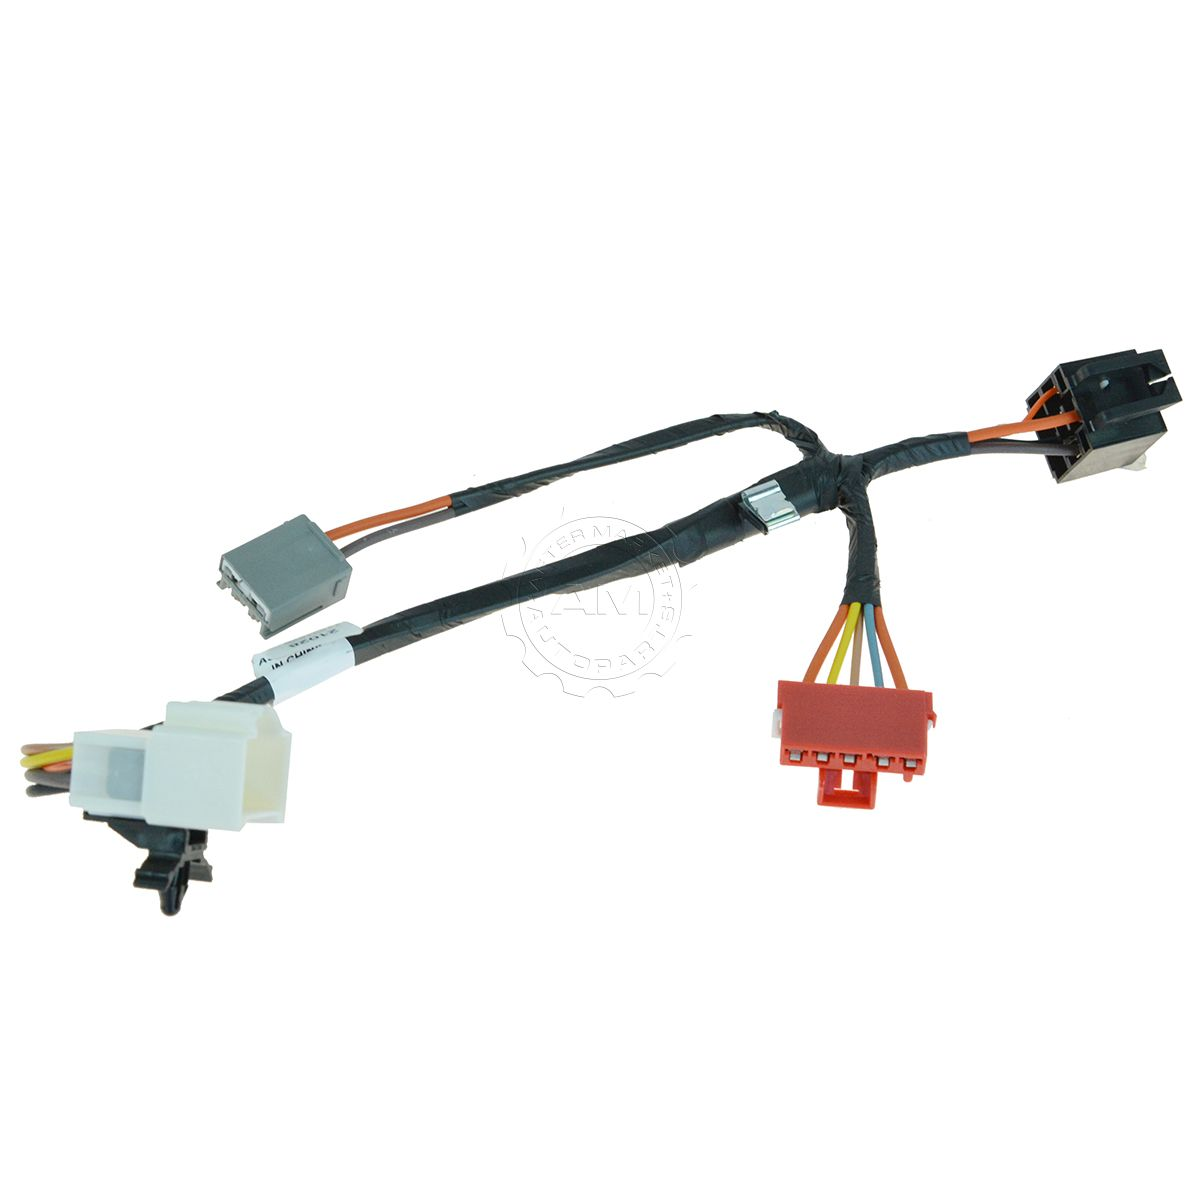 oem blower motor resistor wiring harness pigtail connector for h3 rh ebay com h3 fog light wiring harness 2007 hummer h3 wiring harness diagram